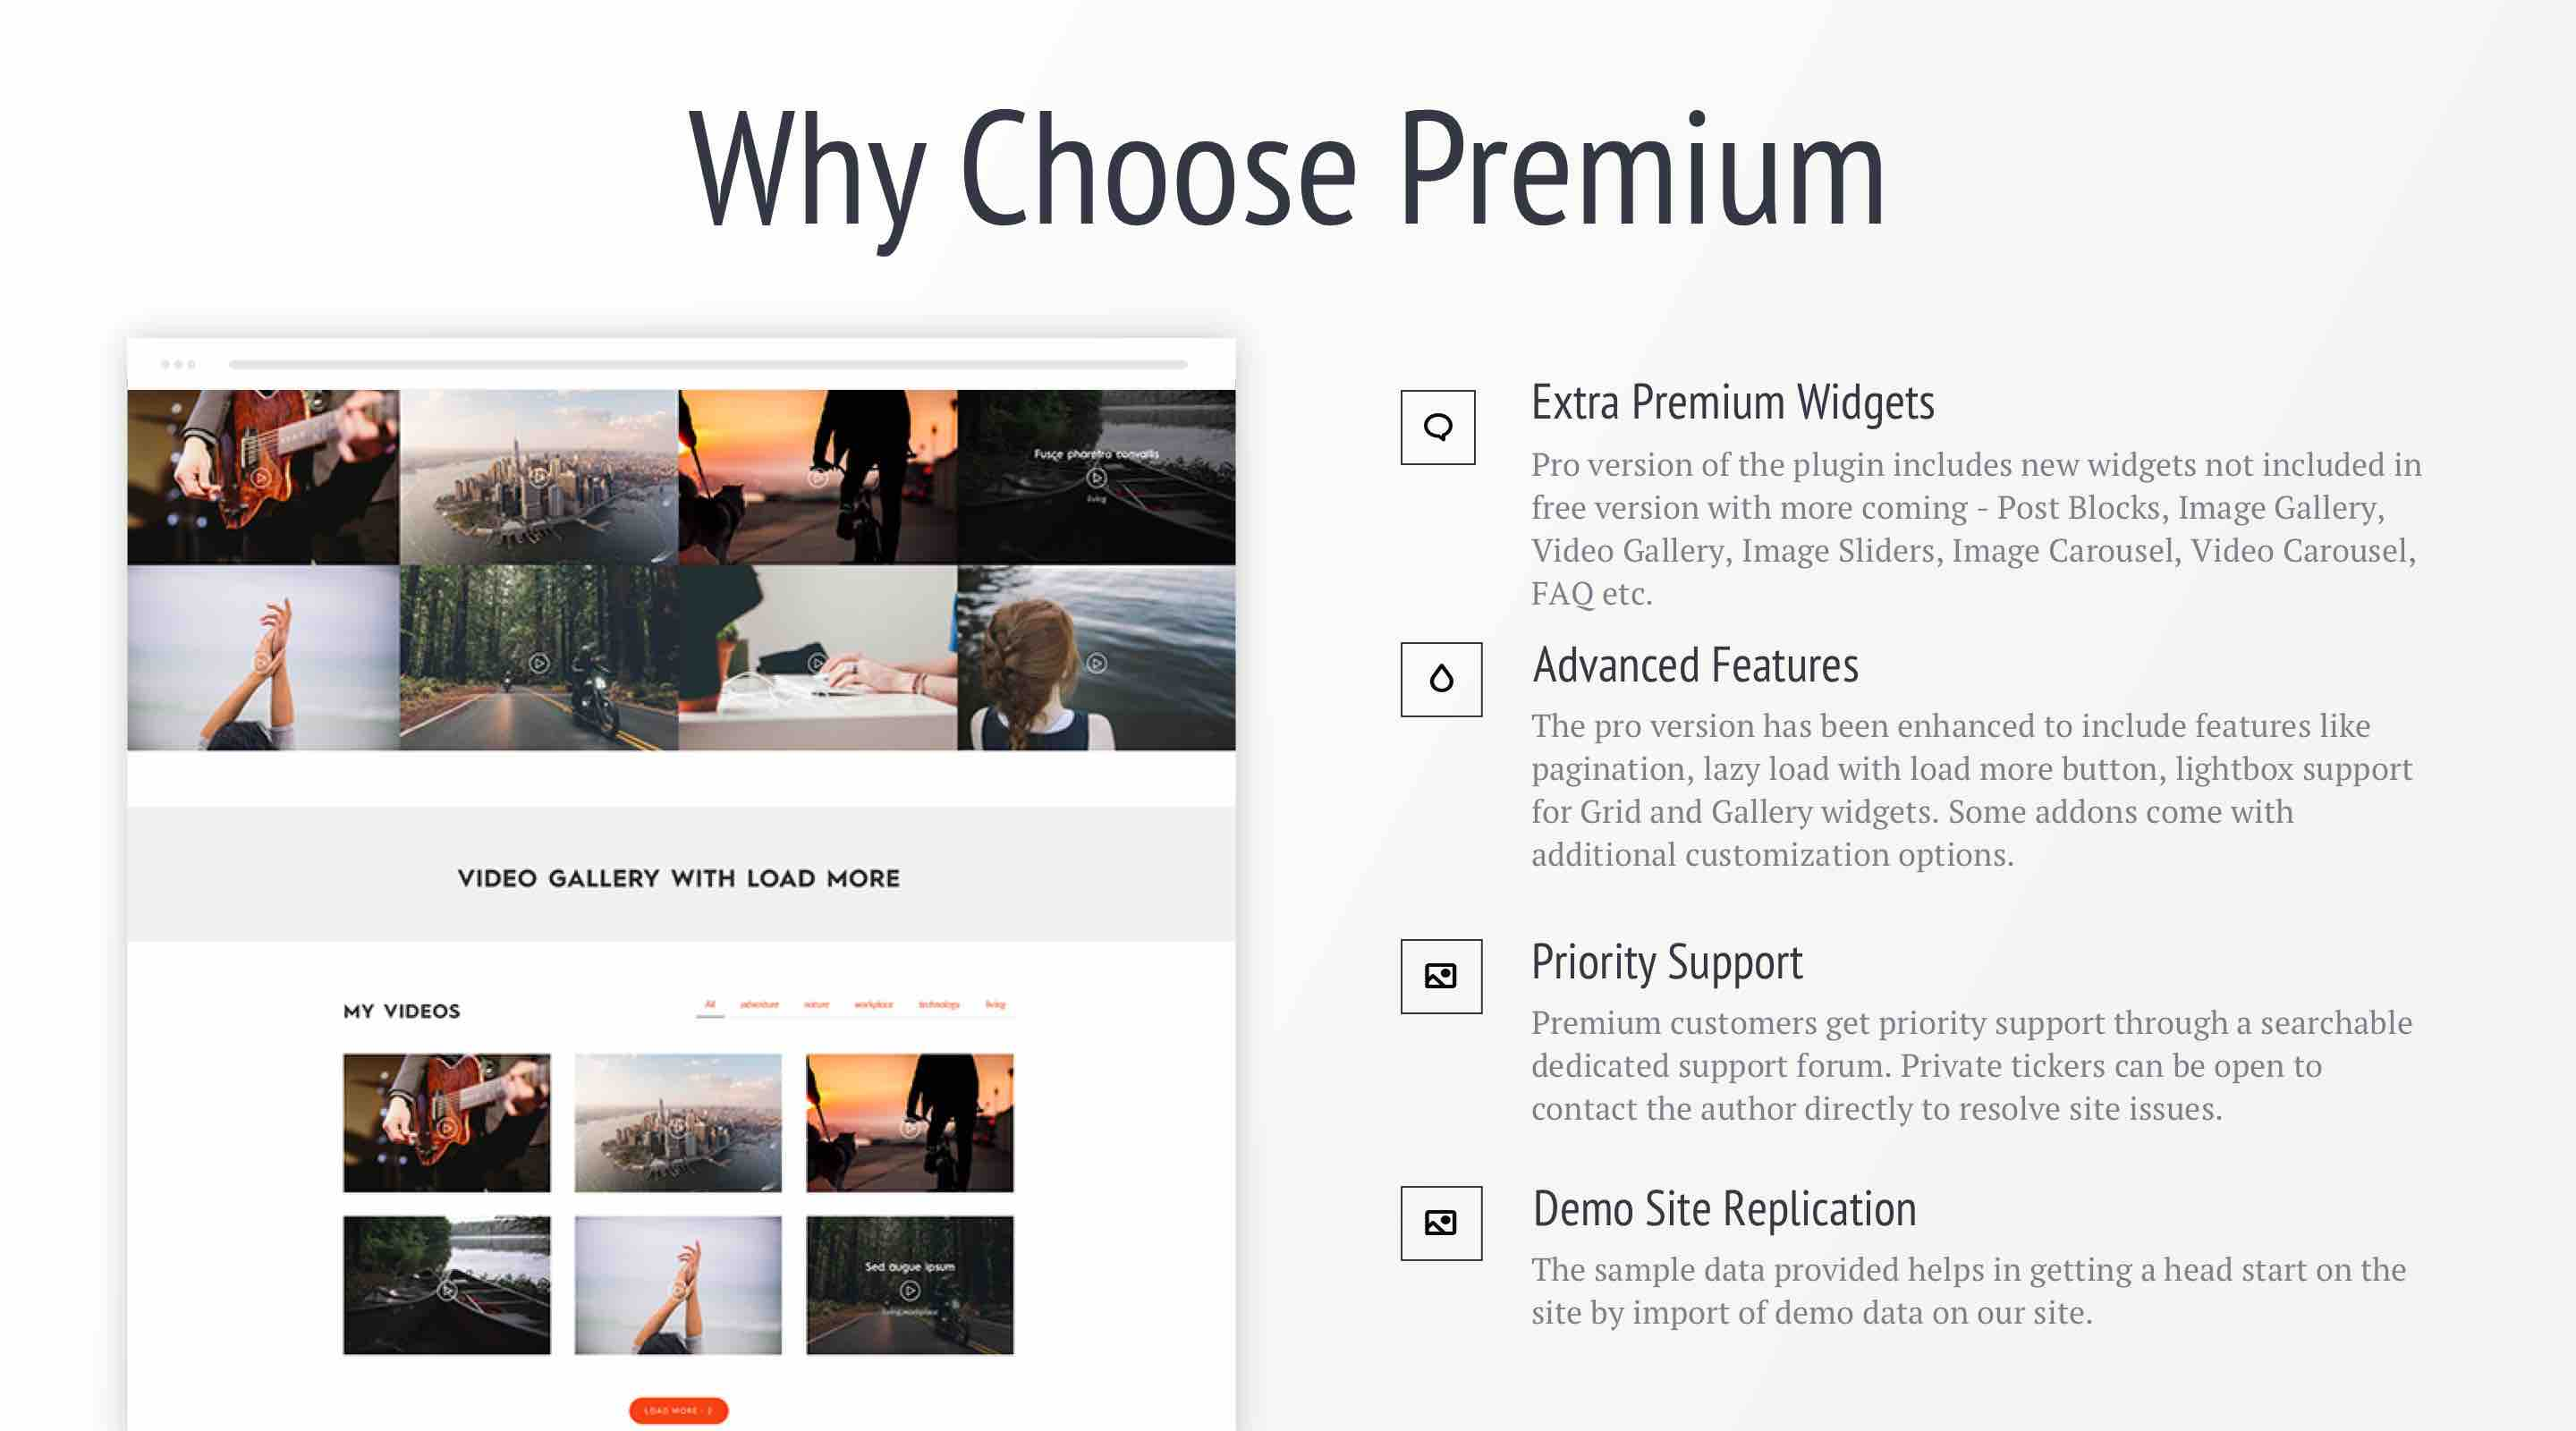 Why Choose Premium